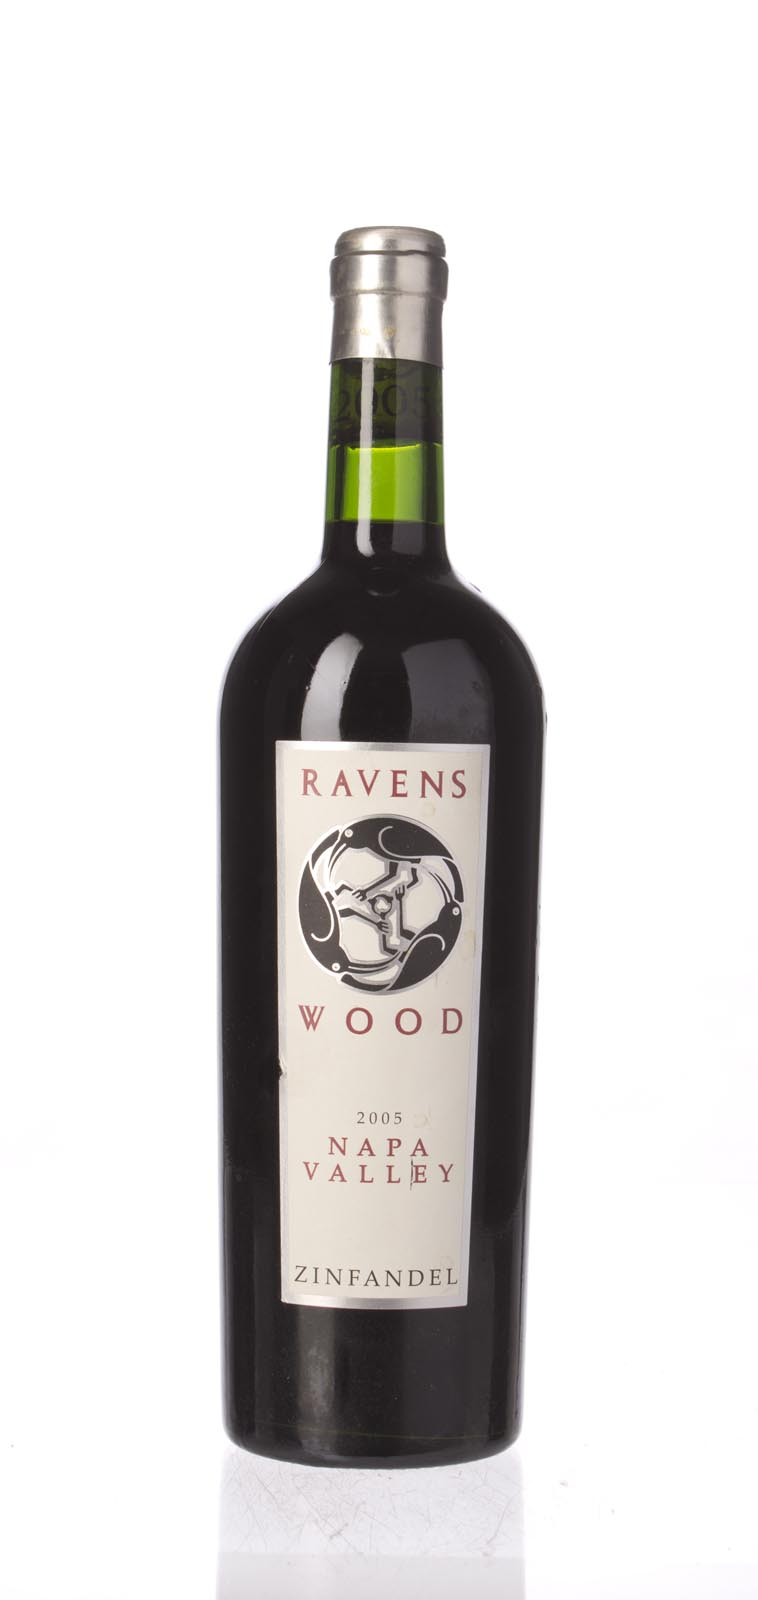 Ravenswood Zinfandel Napa Valley 2005, 750mL (ST89-90) from The BPW - Merchants of rare and fine wines.